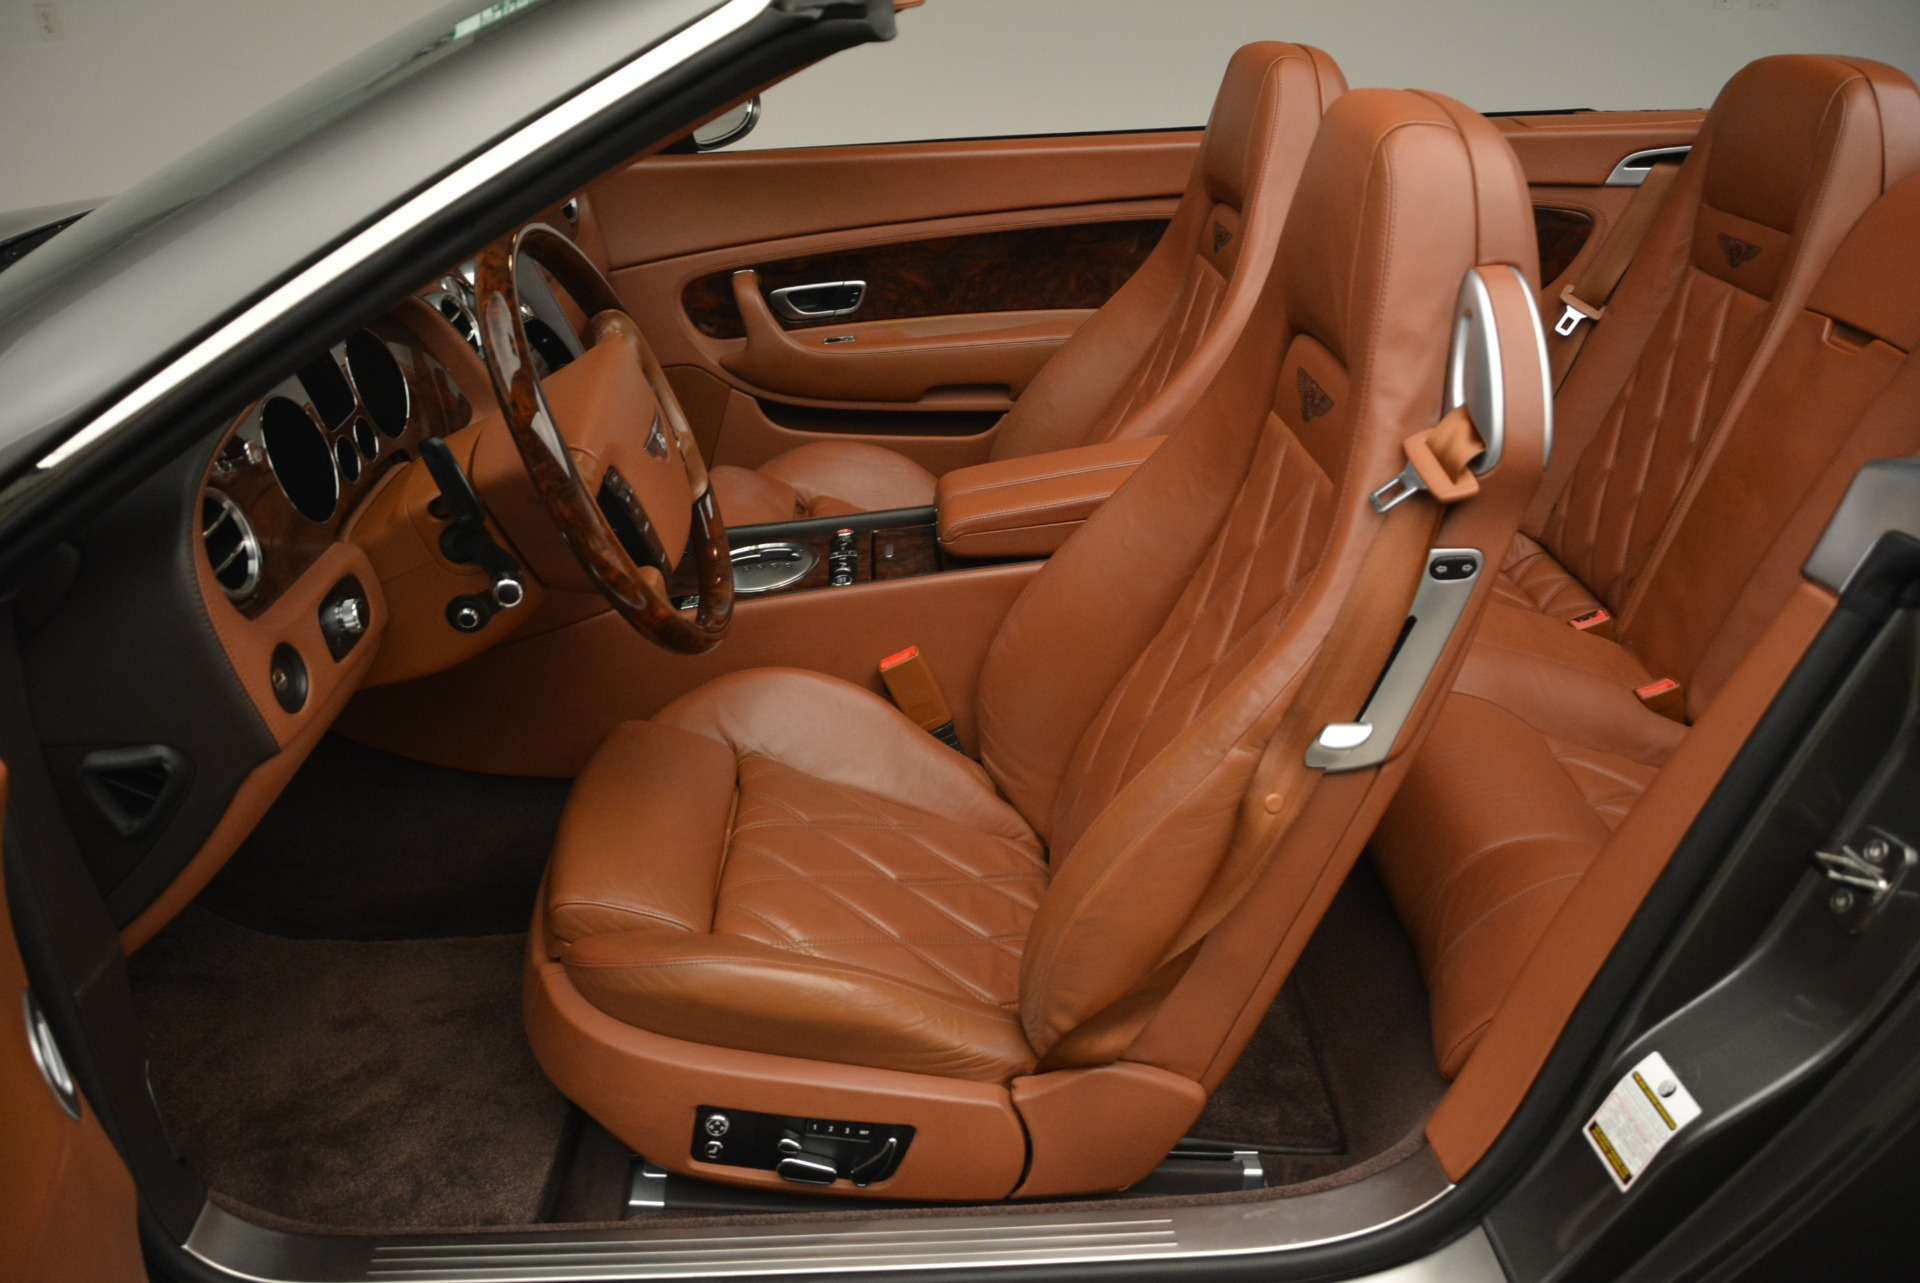 Used 2008 Bentley Continental GT W12 For Sale In Westport, CT 2190_p30